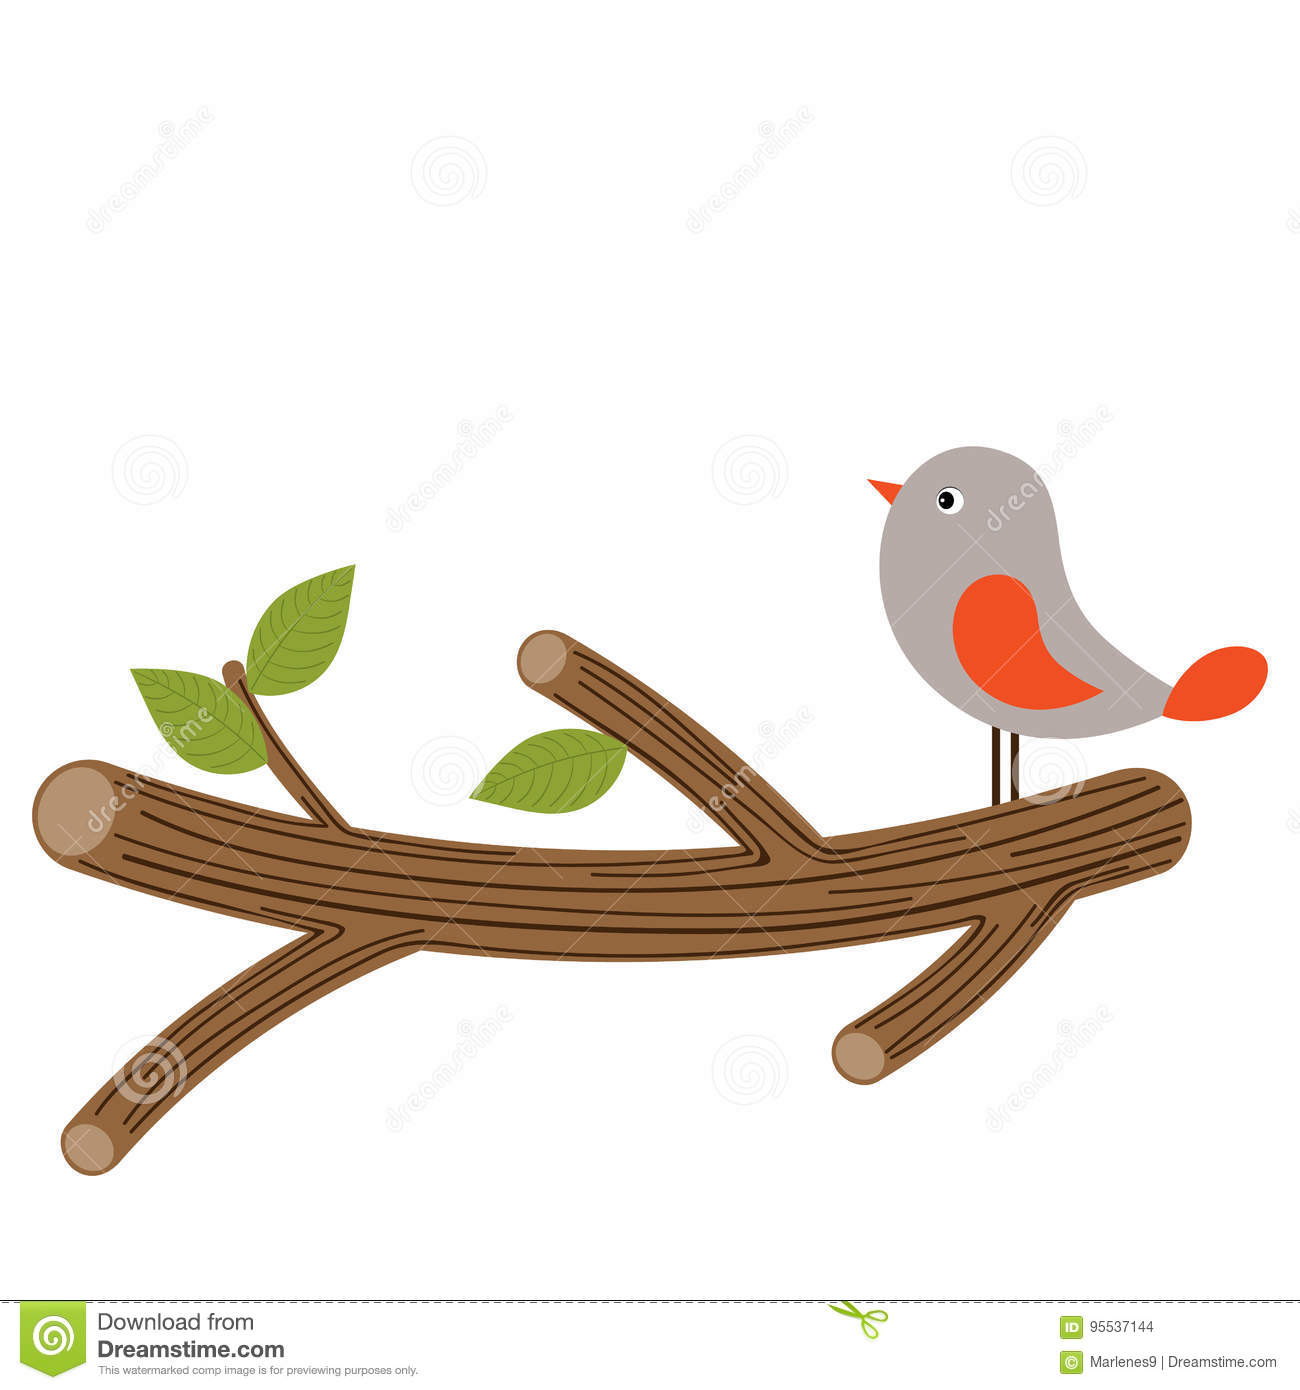 Bird Clipart. Bird on Branch Vector Illustration.